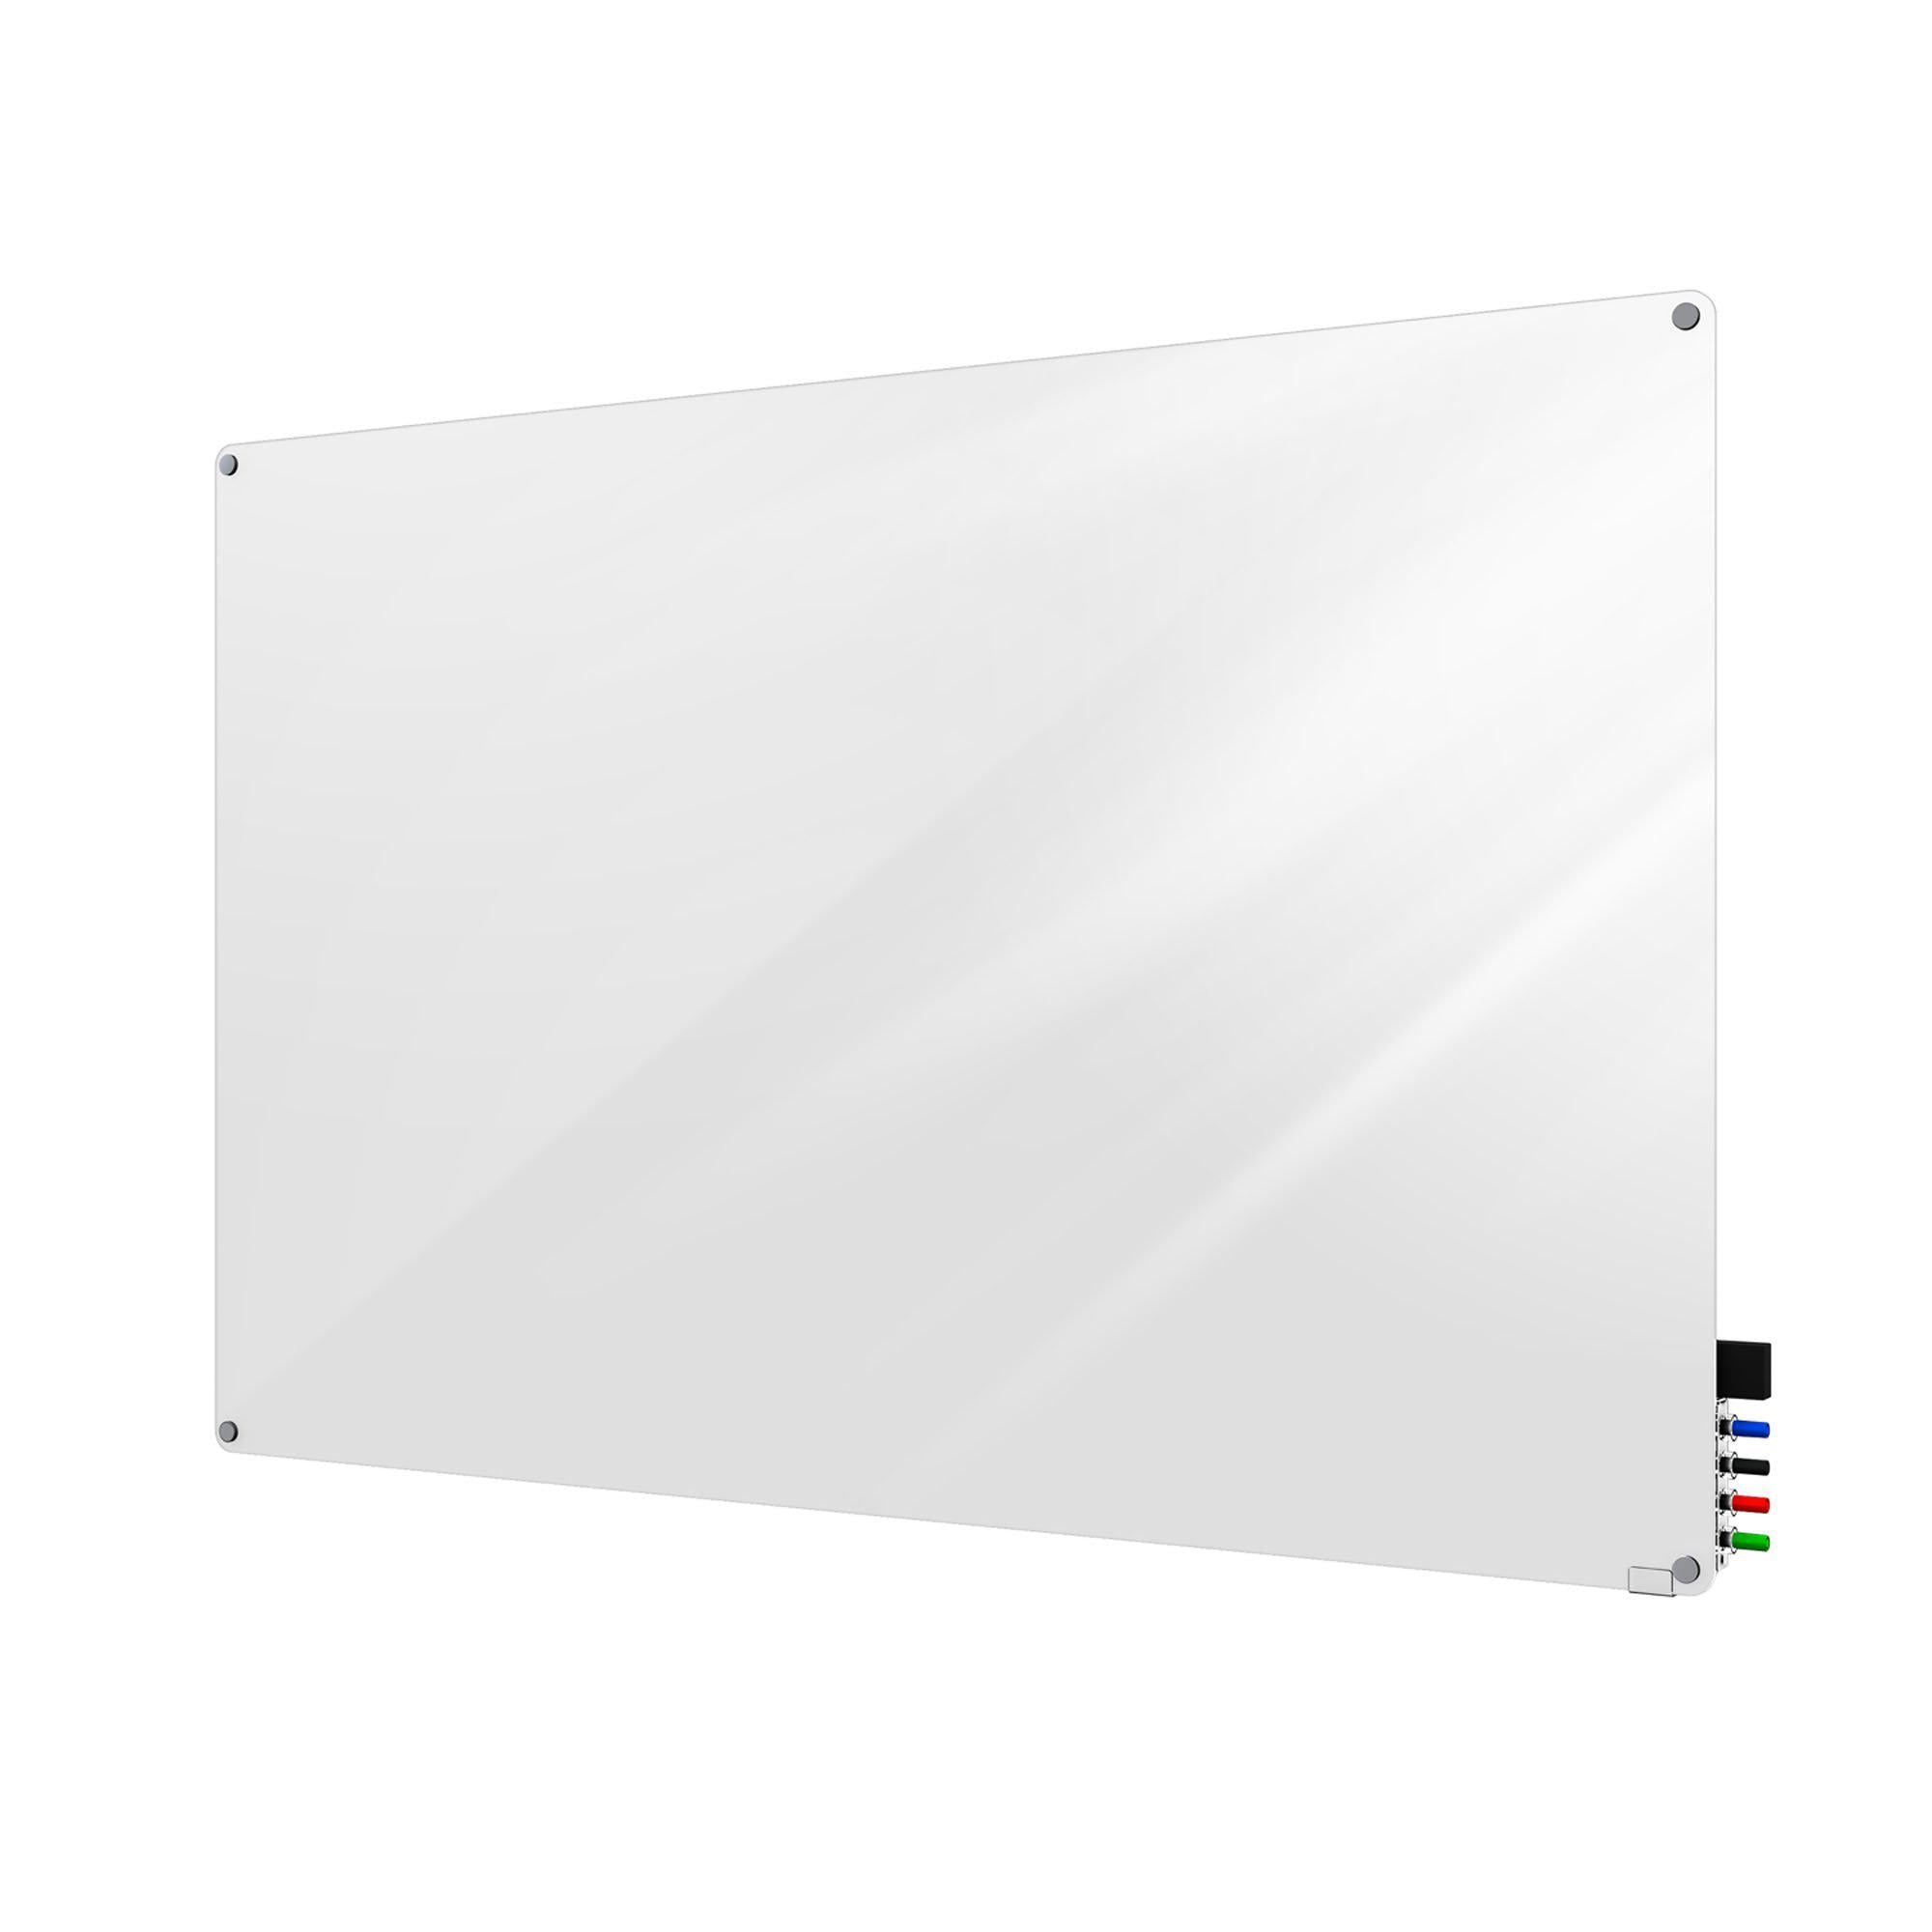 Harmony Glass Whiteboard-Boards-